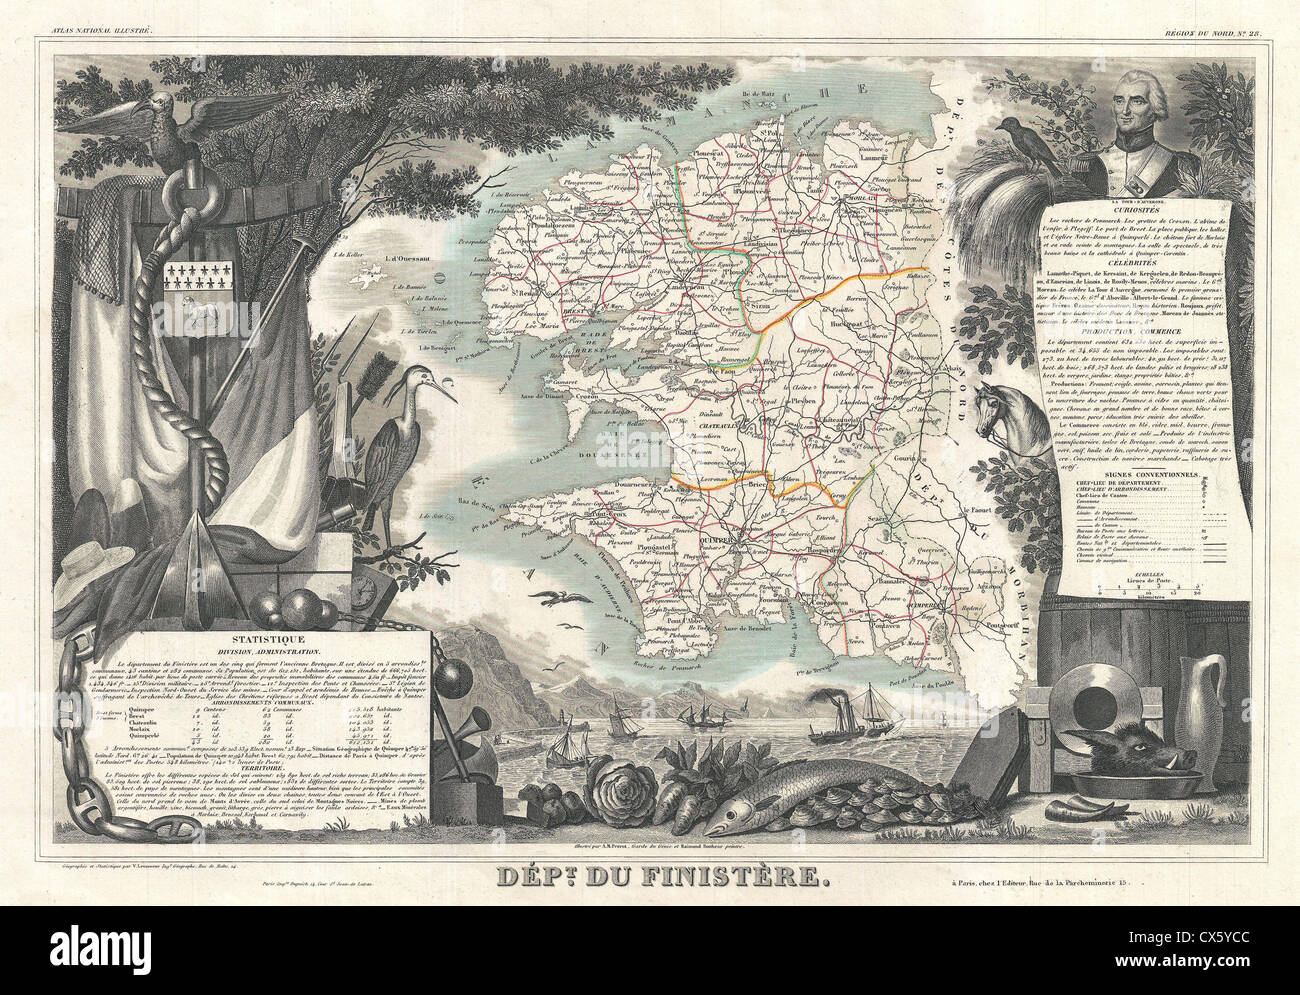 1852 Levasseur Map of the Department du Finistere, France - Stock Image